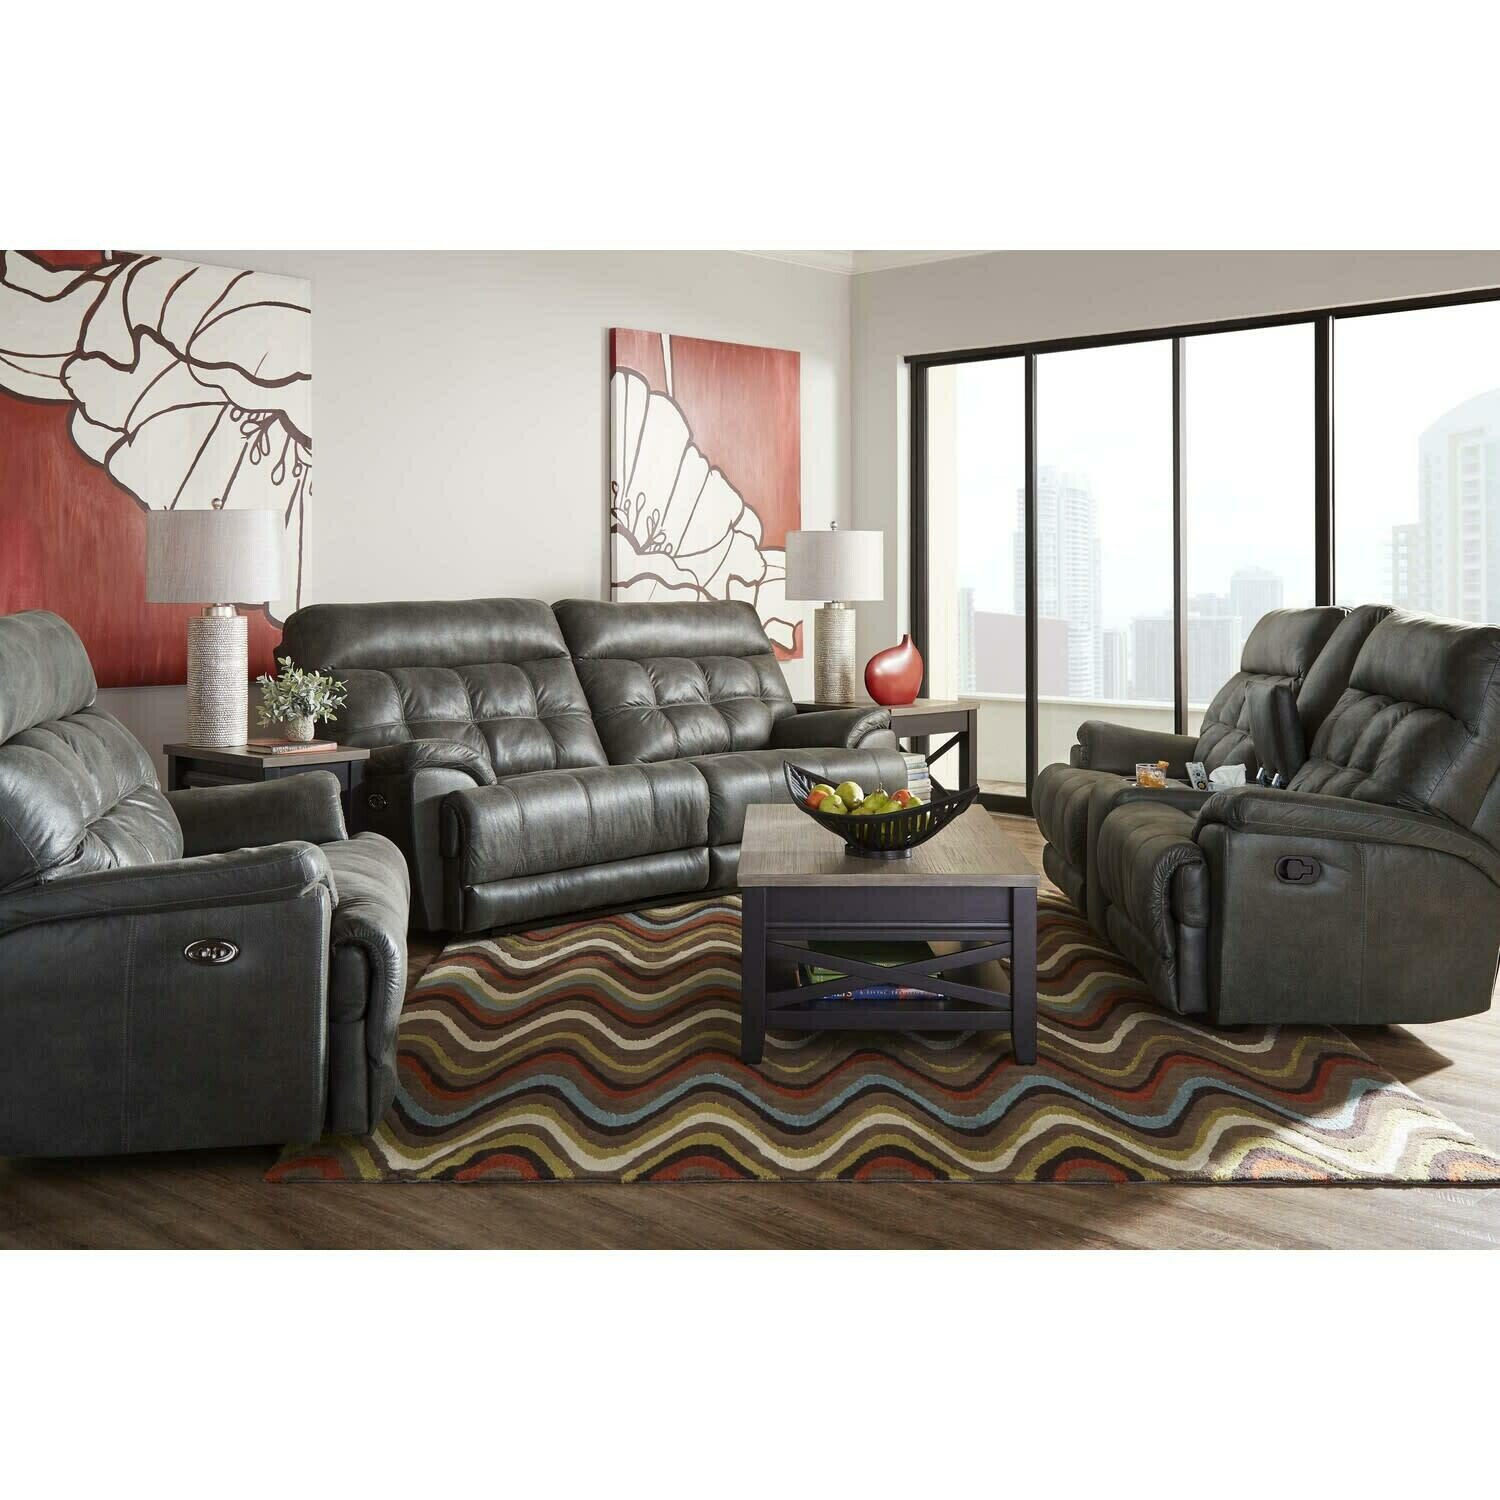 56500 Expedition Shadow Duel Reclining 3 Pc (Sofa + Love + Oversize Recliner